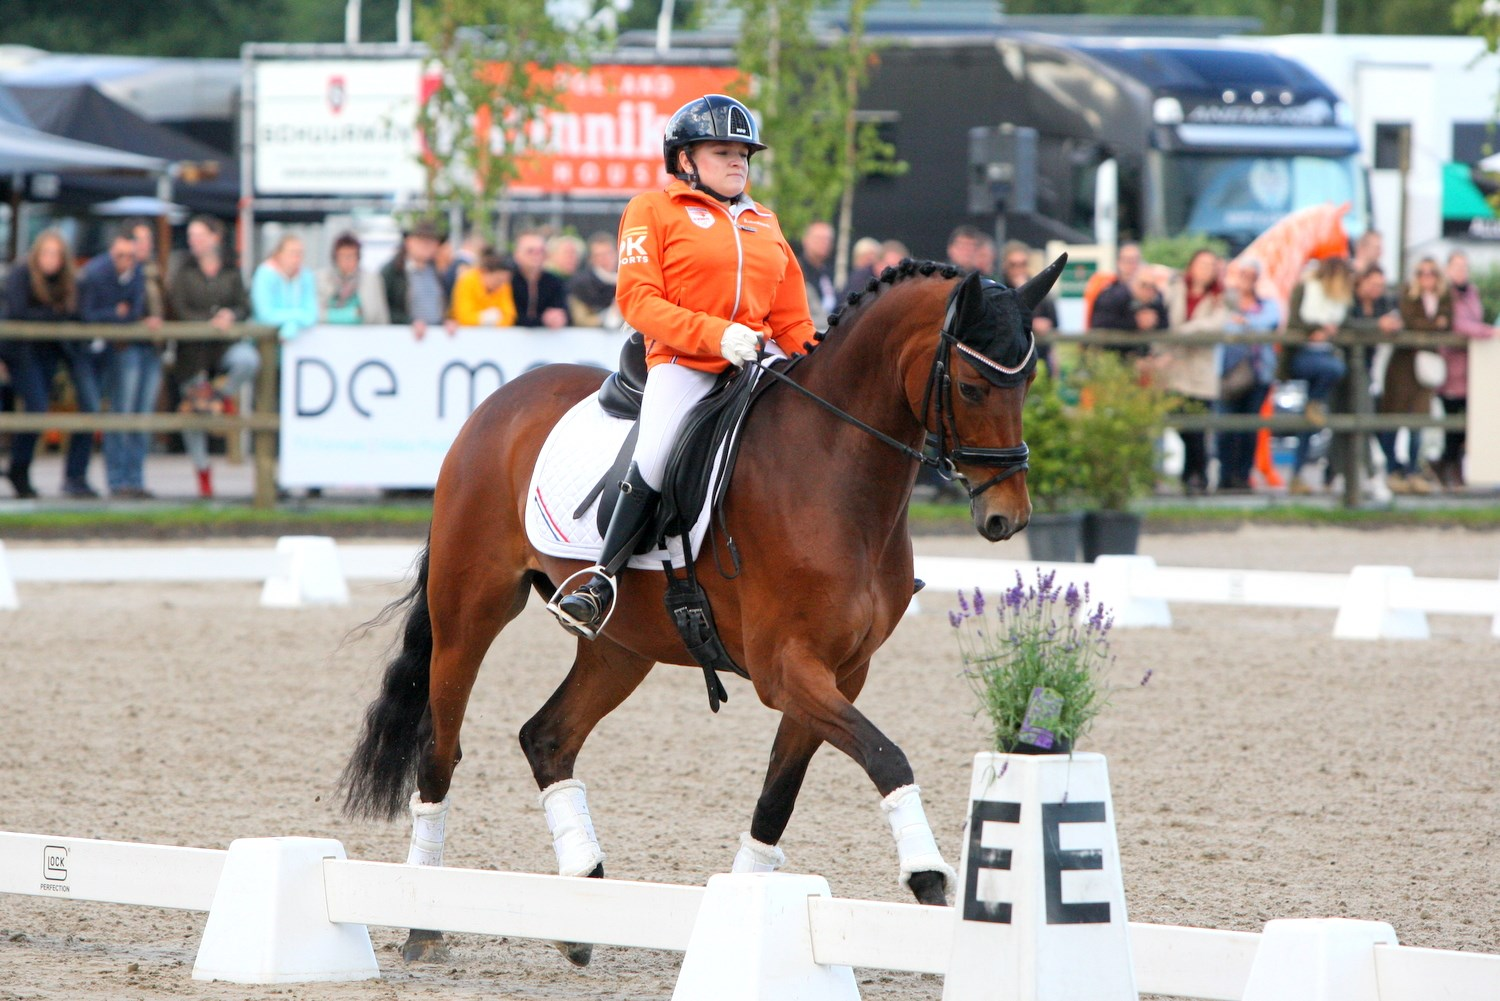 Outdoor Gelderland start met dag vol parasport